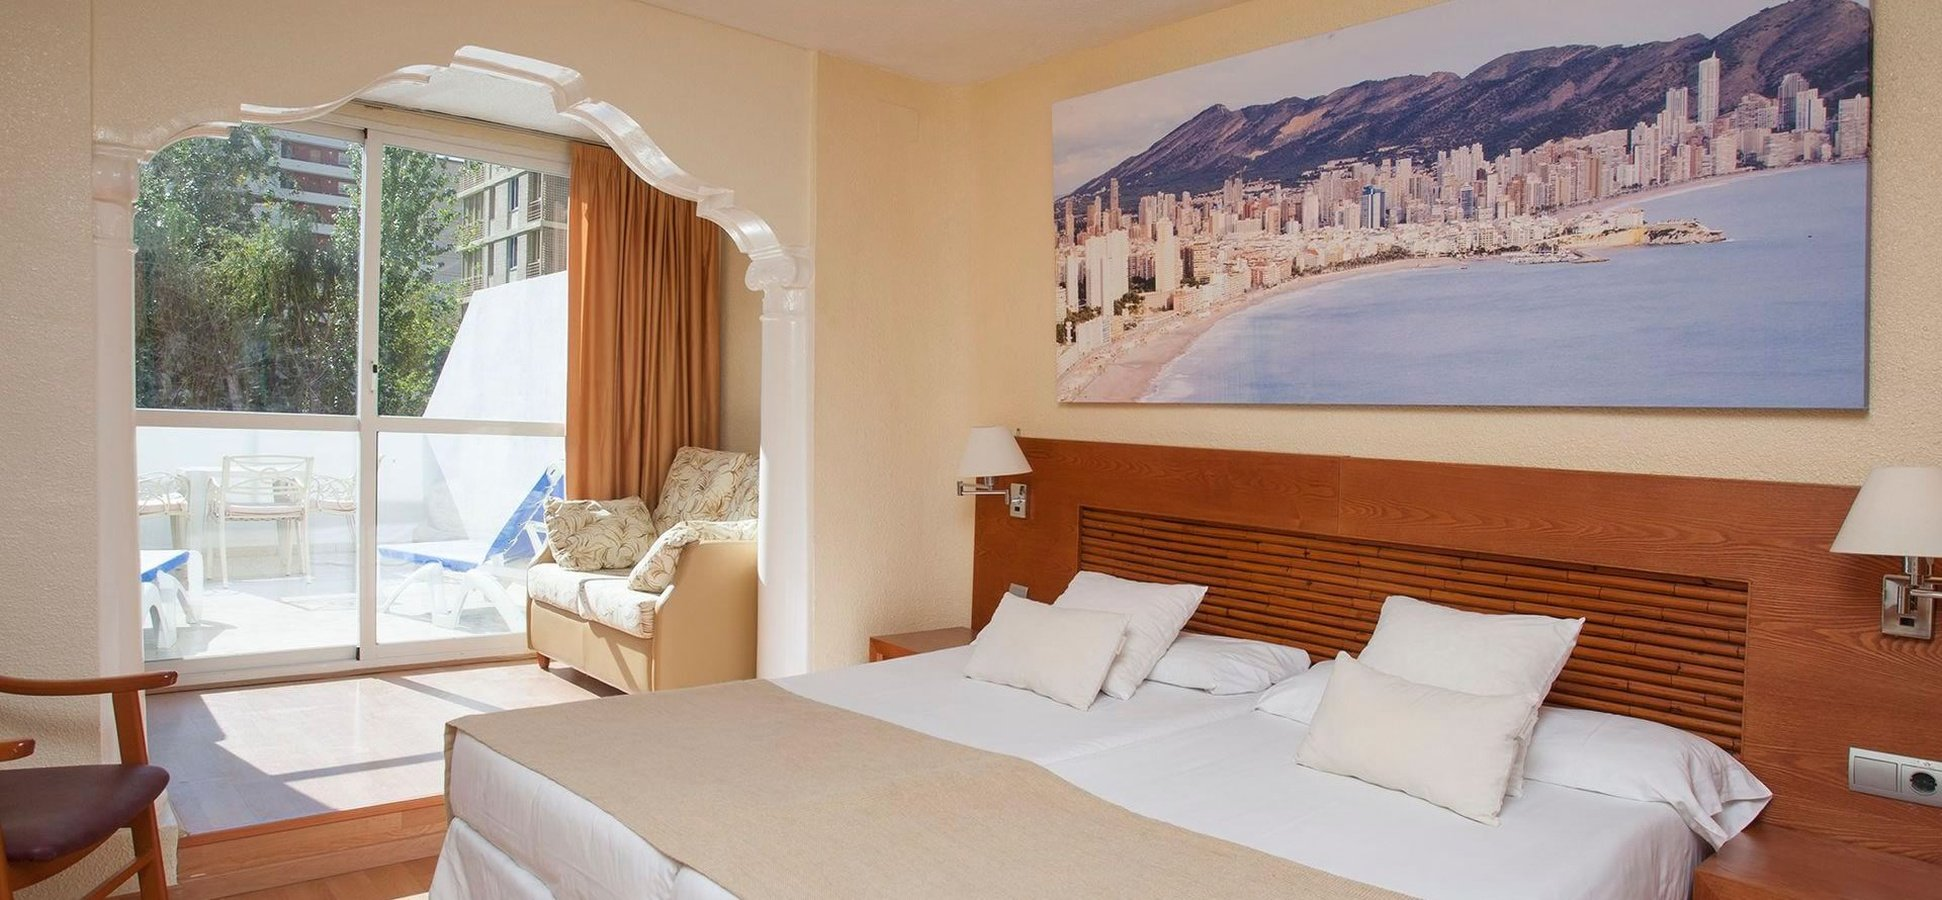 ENCONTRARÁS SERVICIOS EXCLUSIVOS Magic Villa Benidorm Benidorm